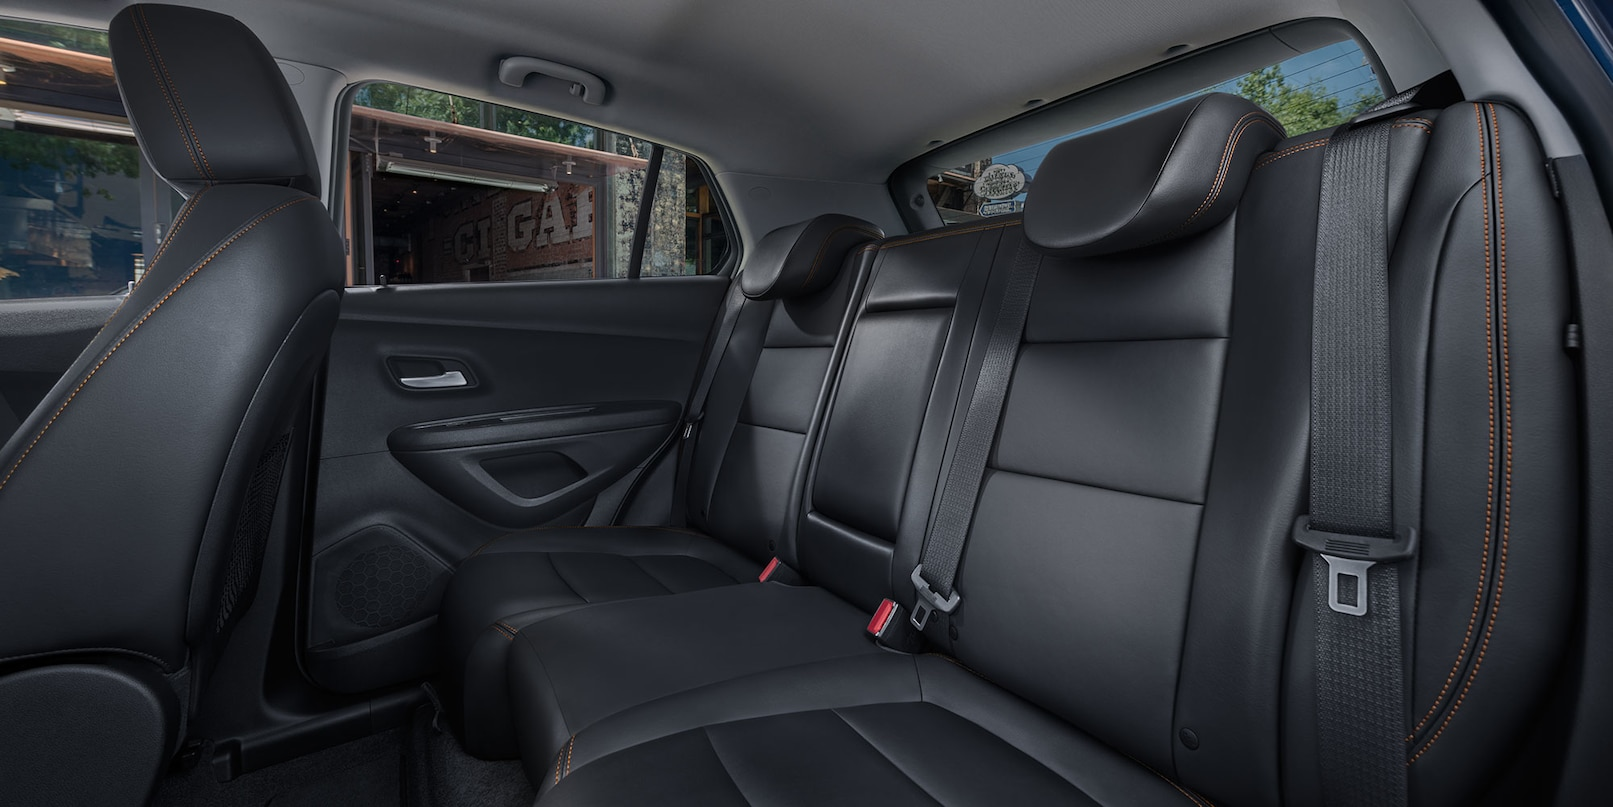 Interior of the 2018 Chevy Trax